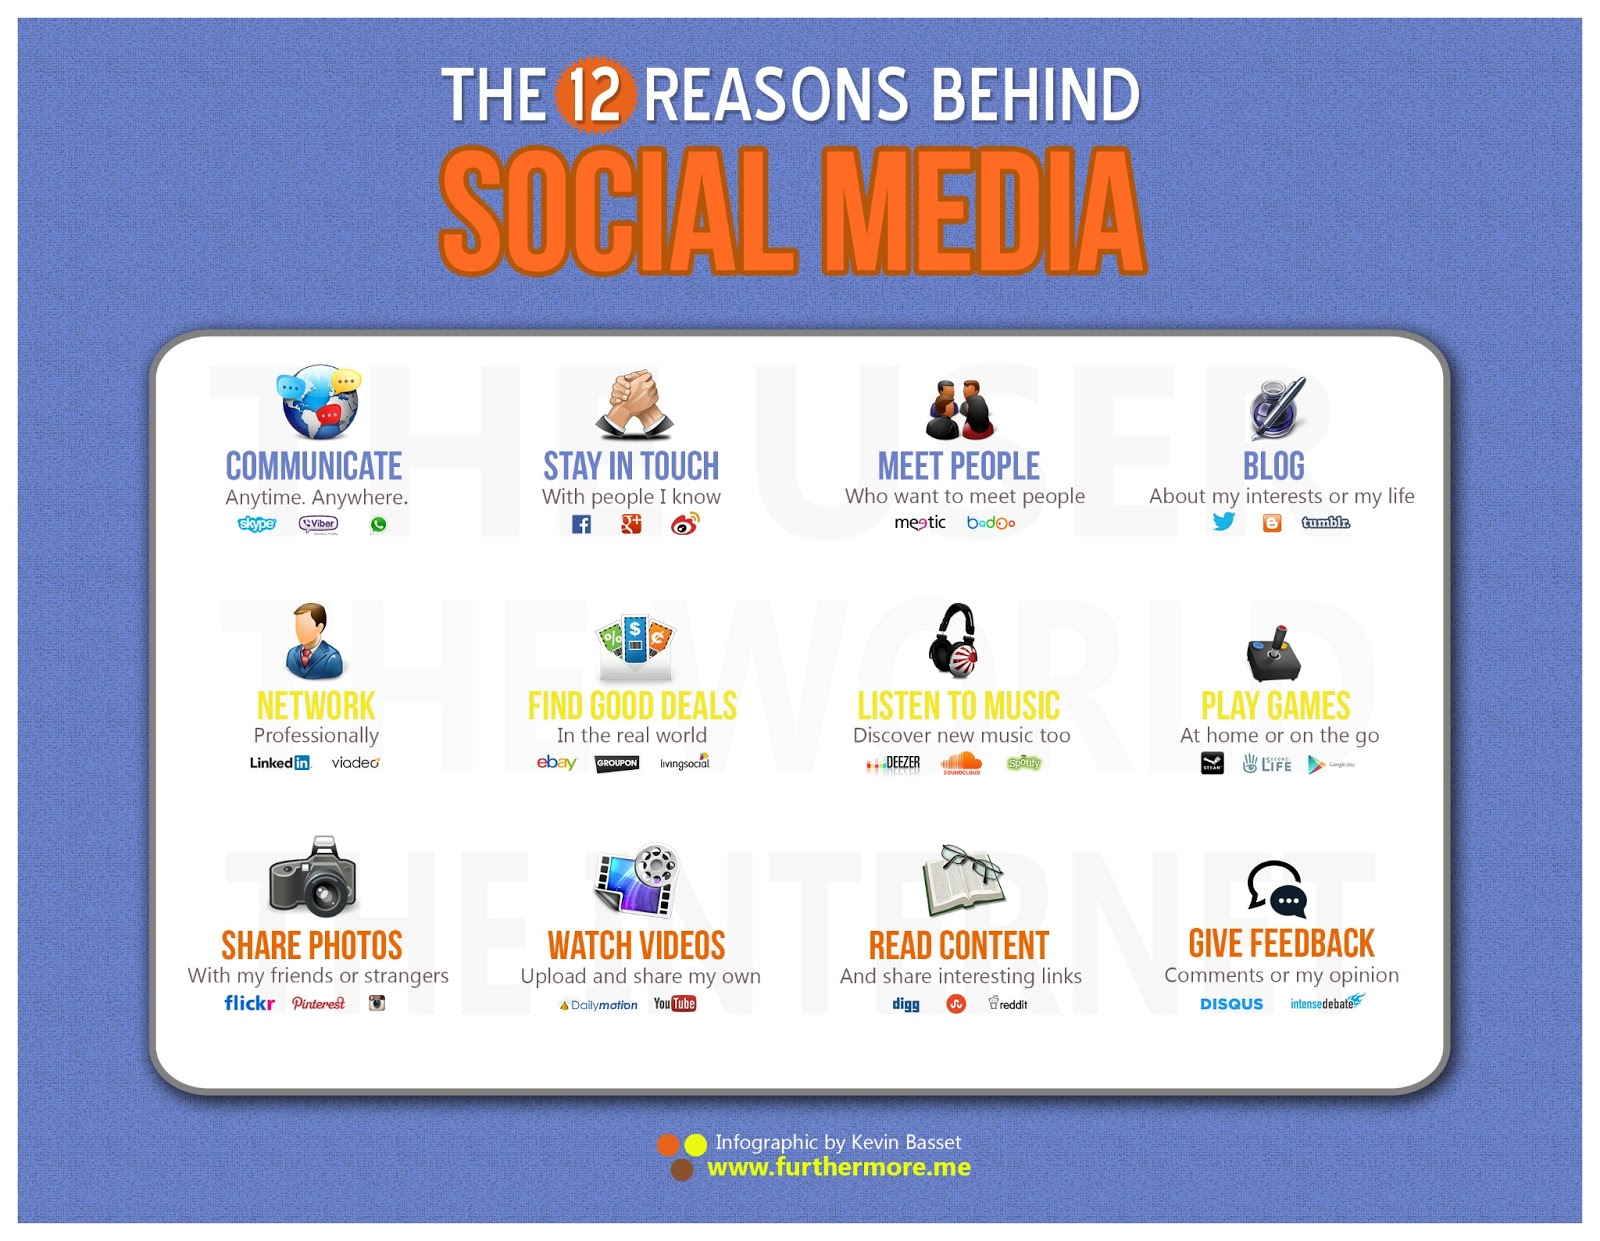 Infographic: The 12 Reasons Behind Social Media